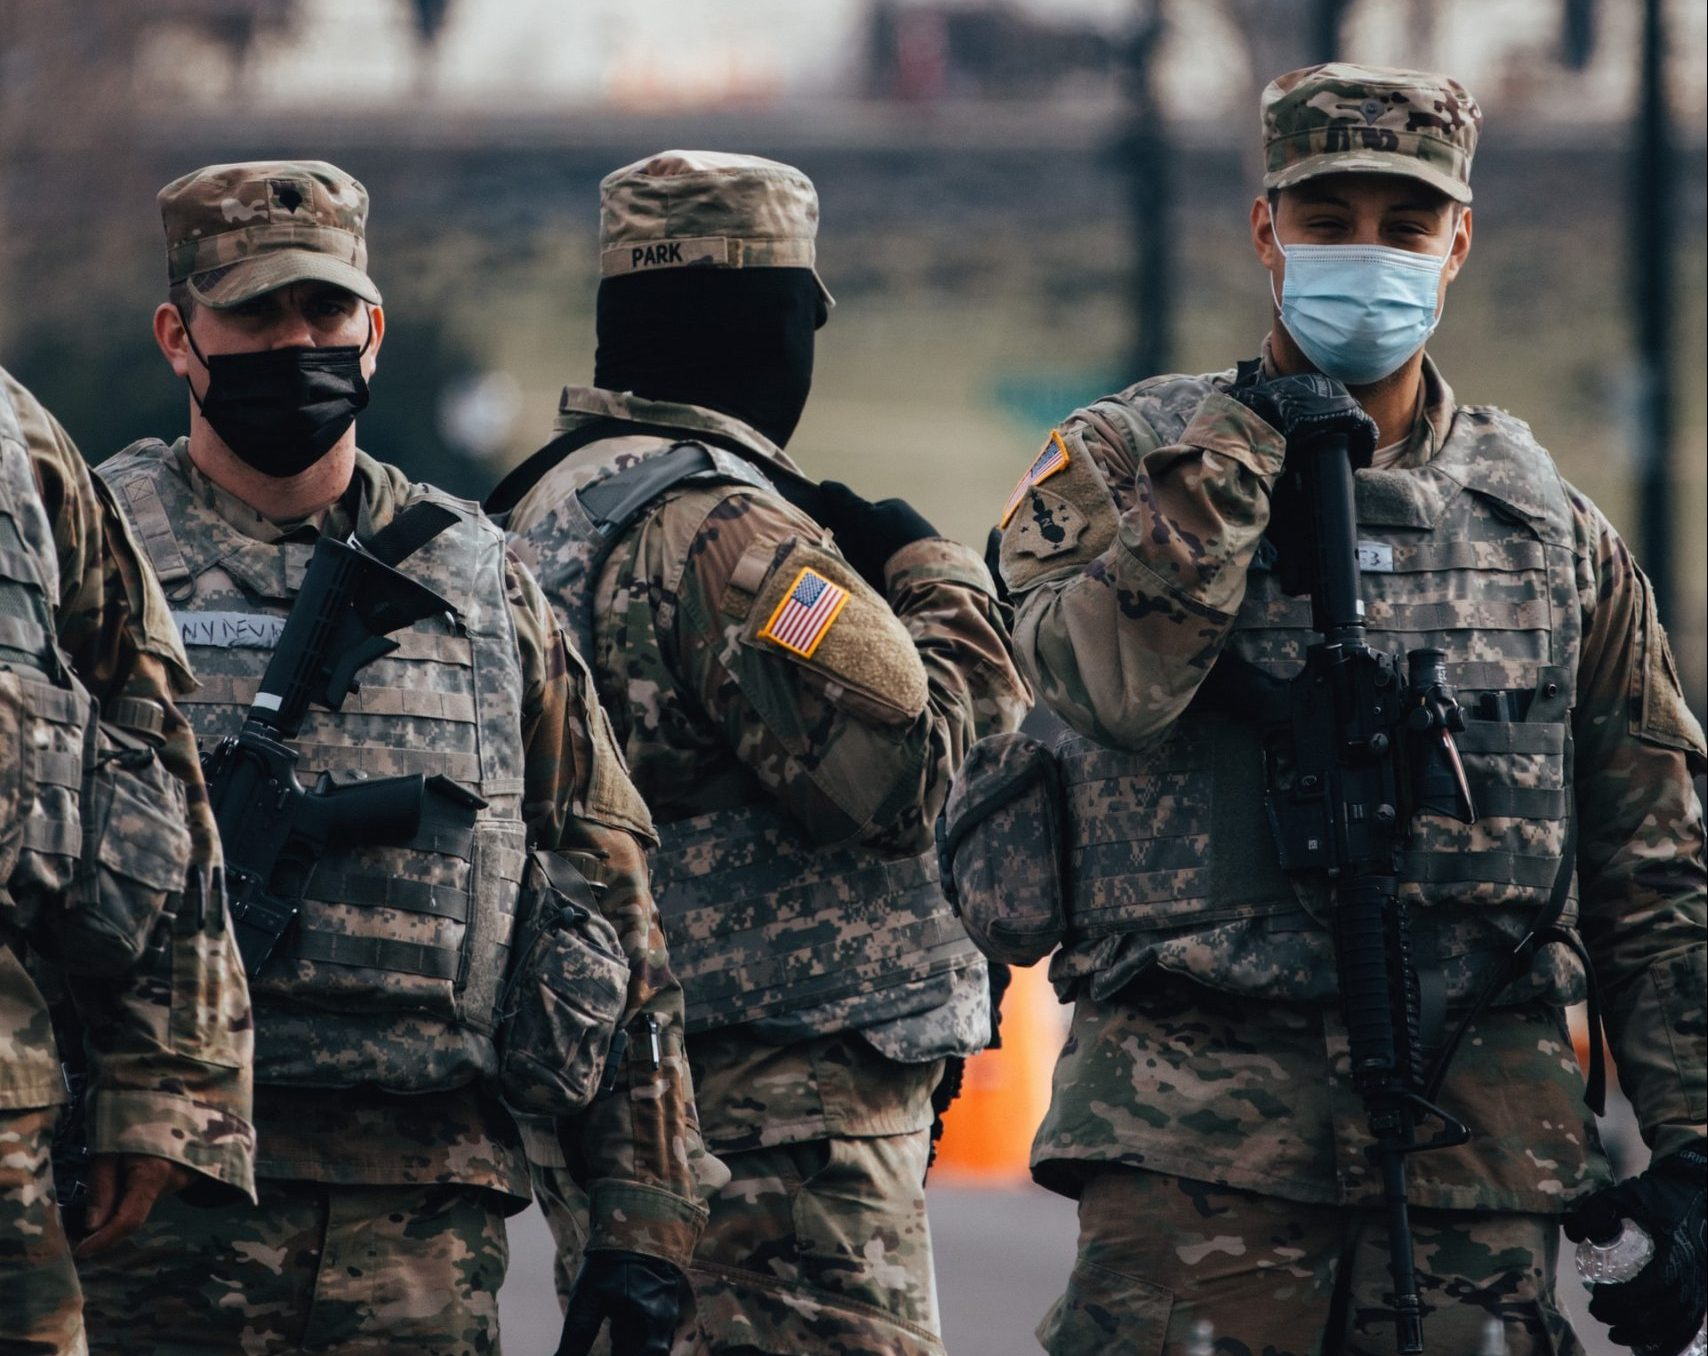 National Guard is 'Gearing Up' to Border as Migrant Caravan Approaches